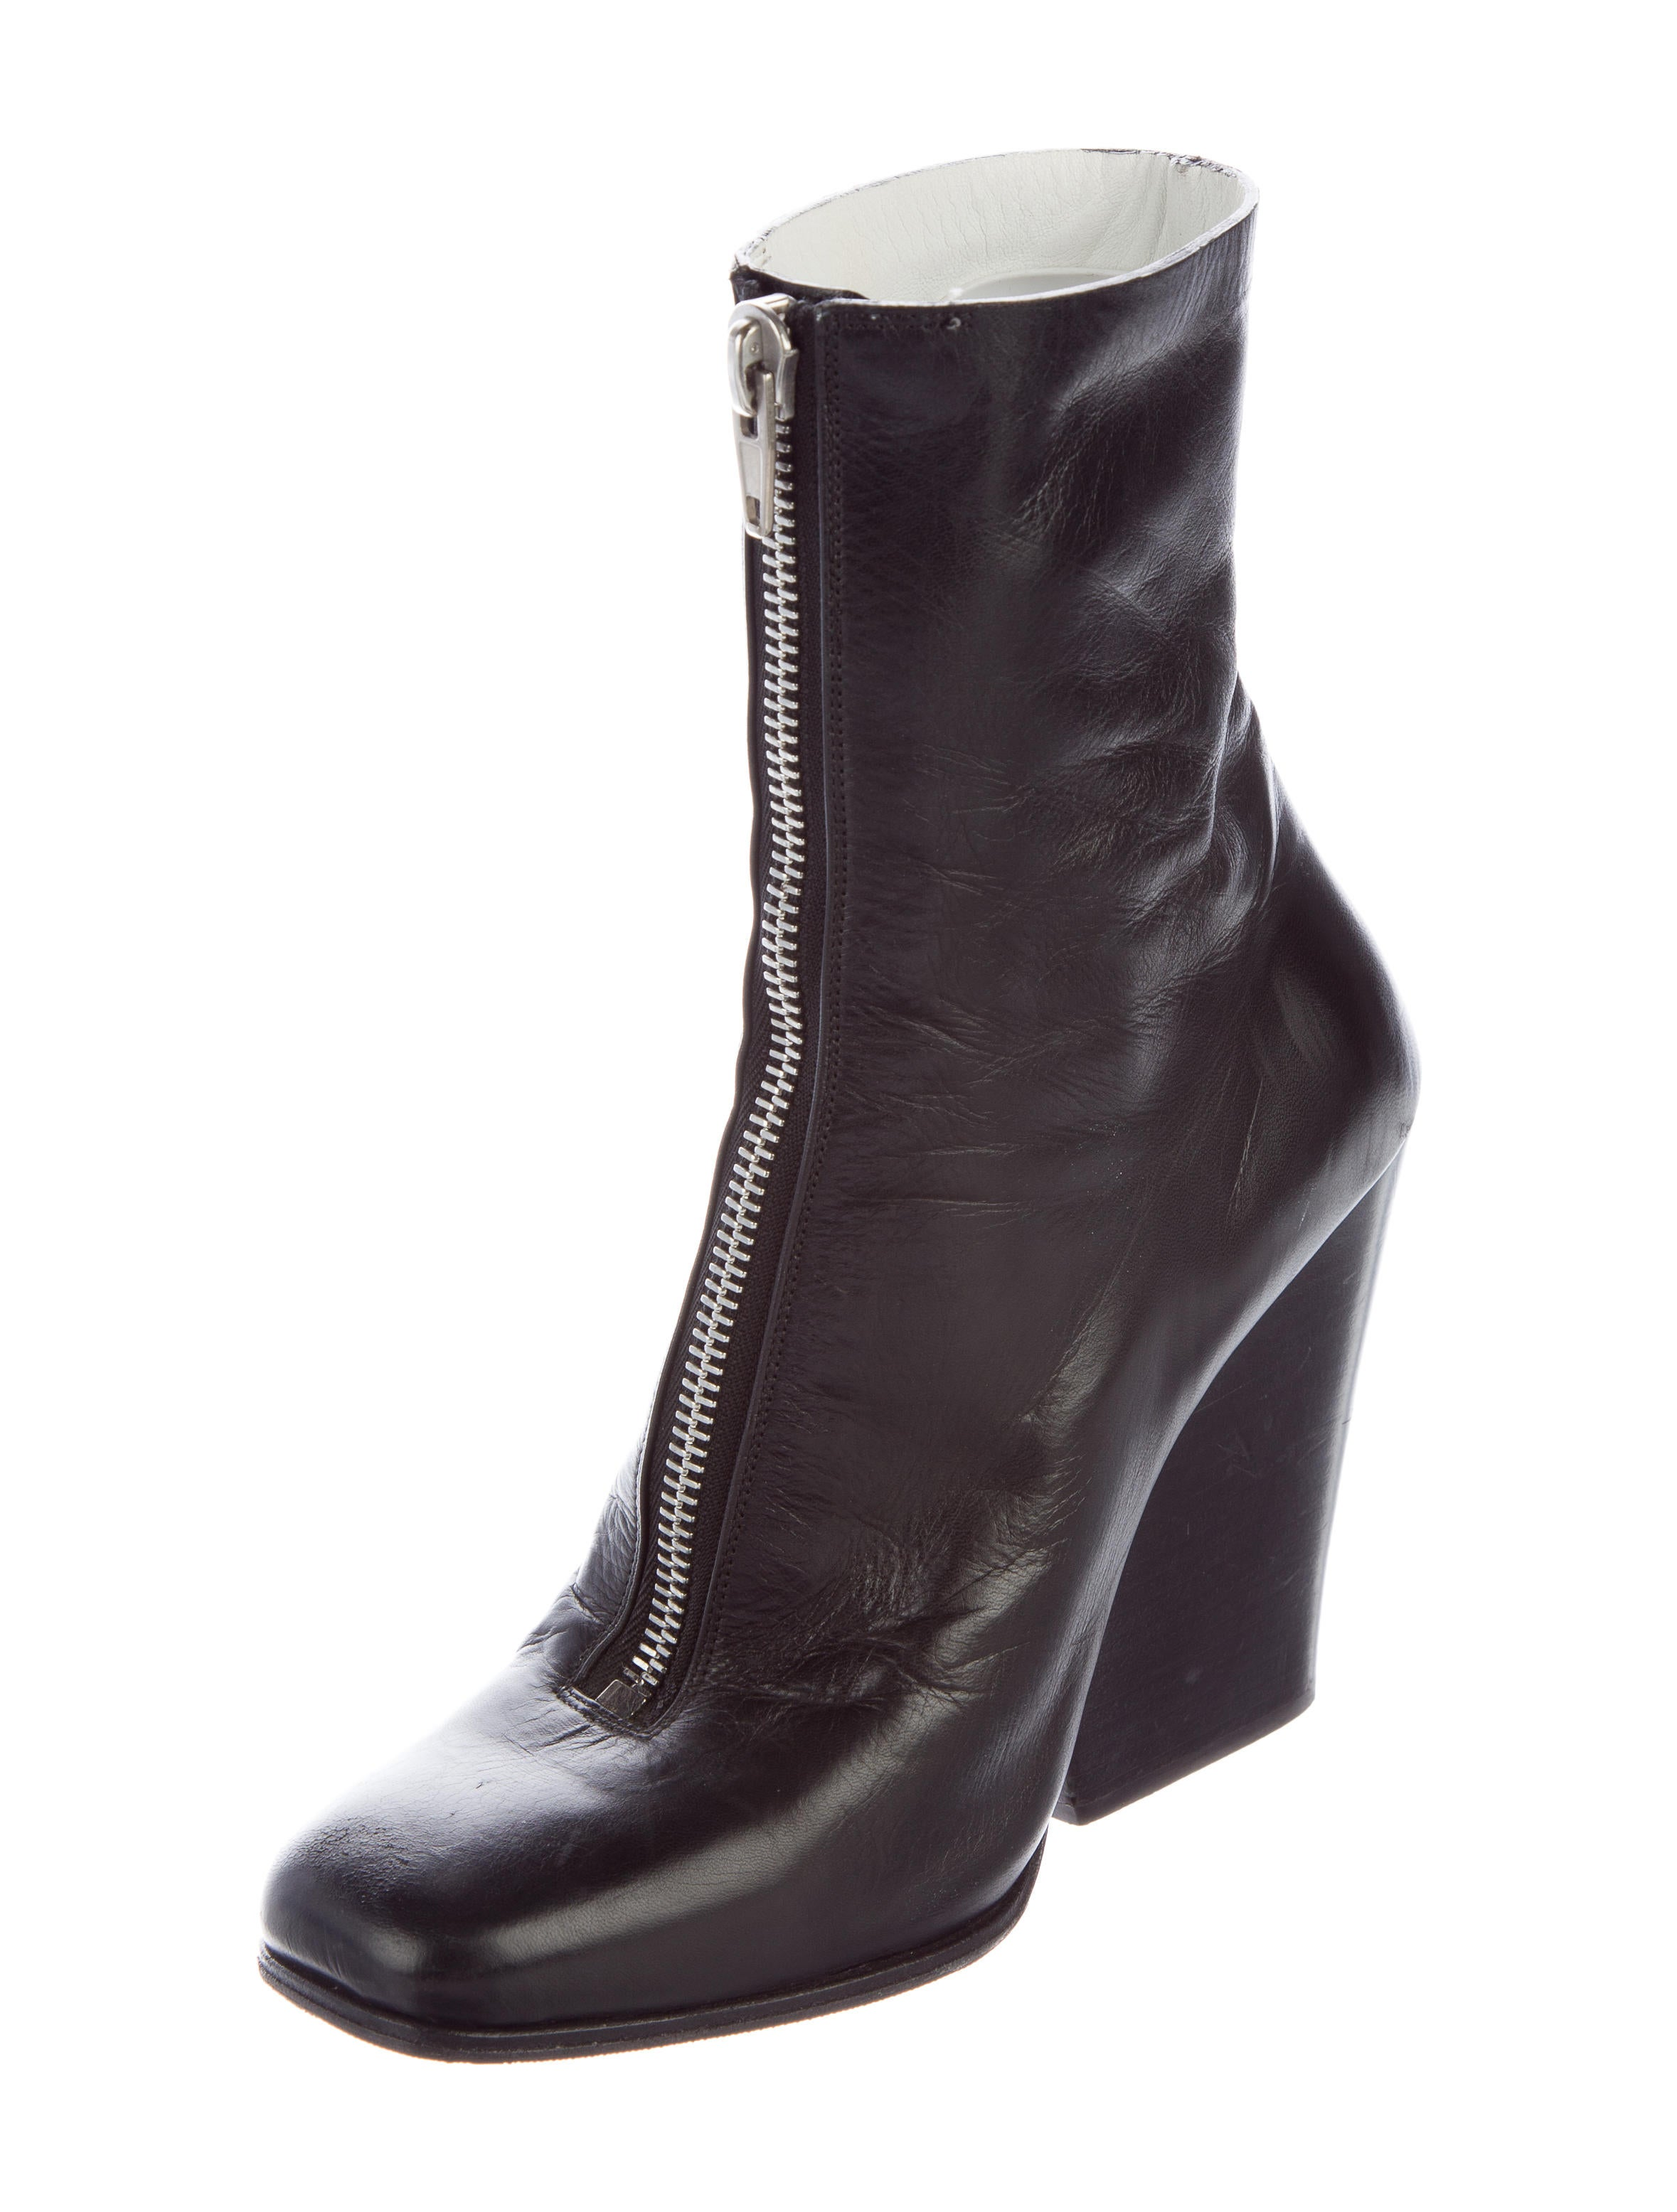 c 233 line leather zipper accented ankle boots shoes